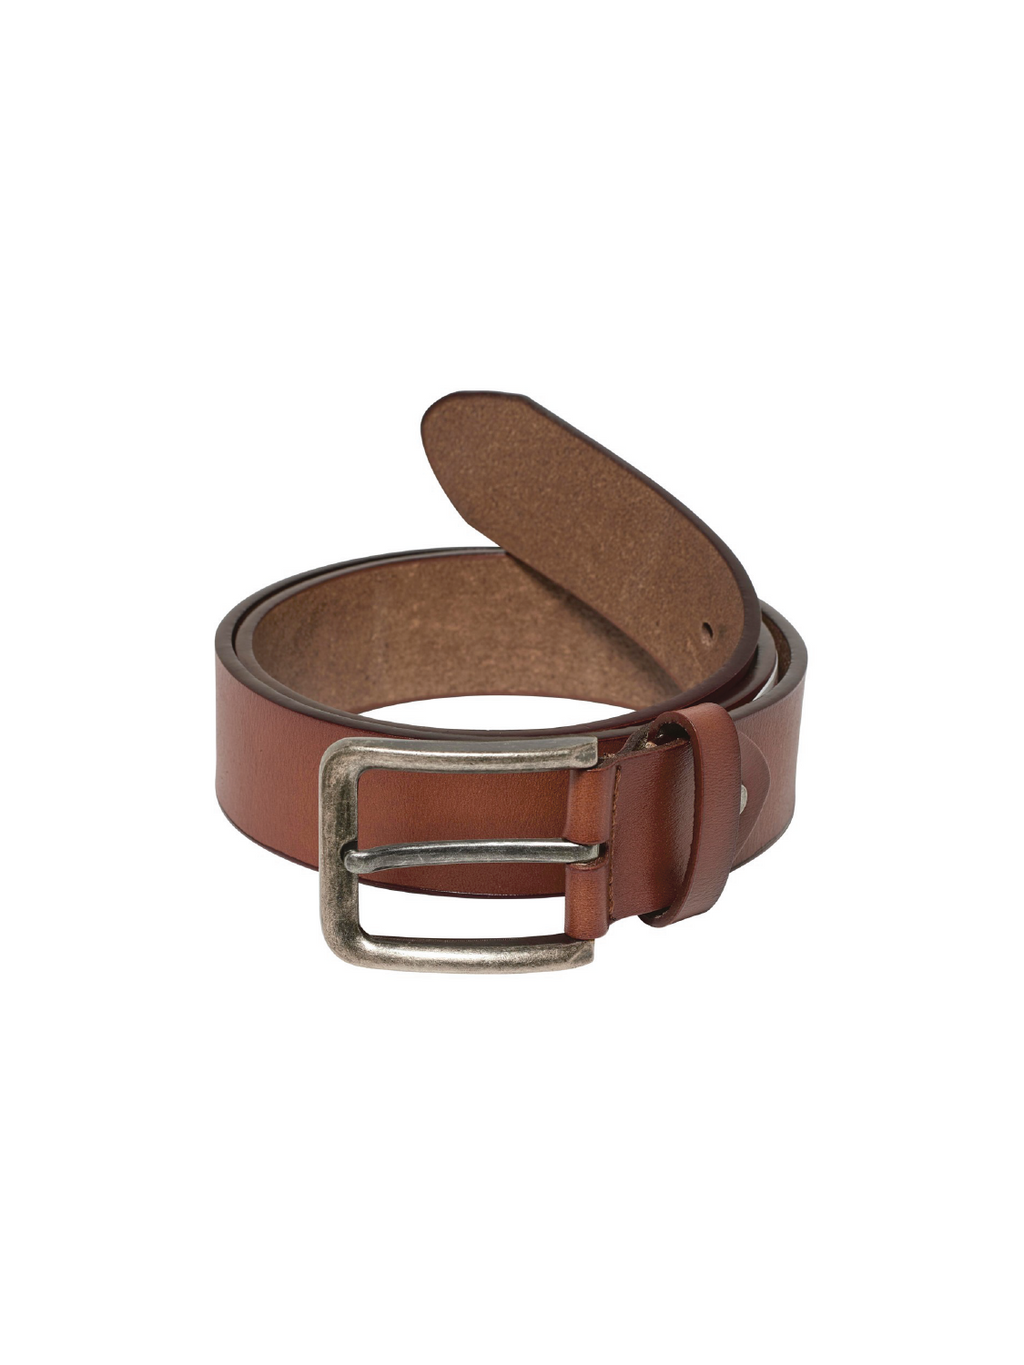 Charlton Leather Belte - Cognaq